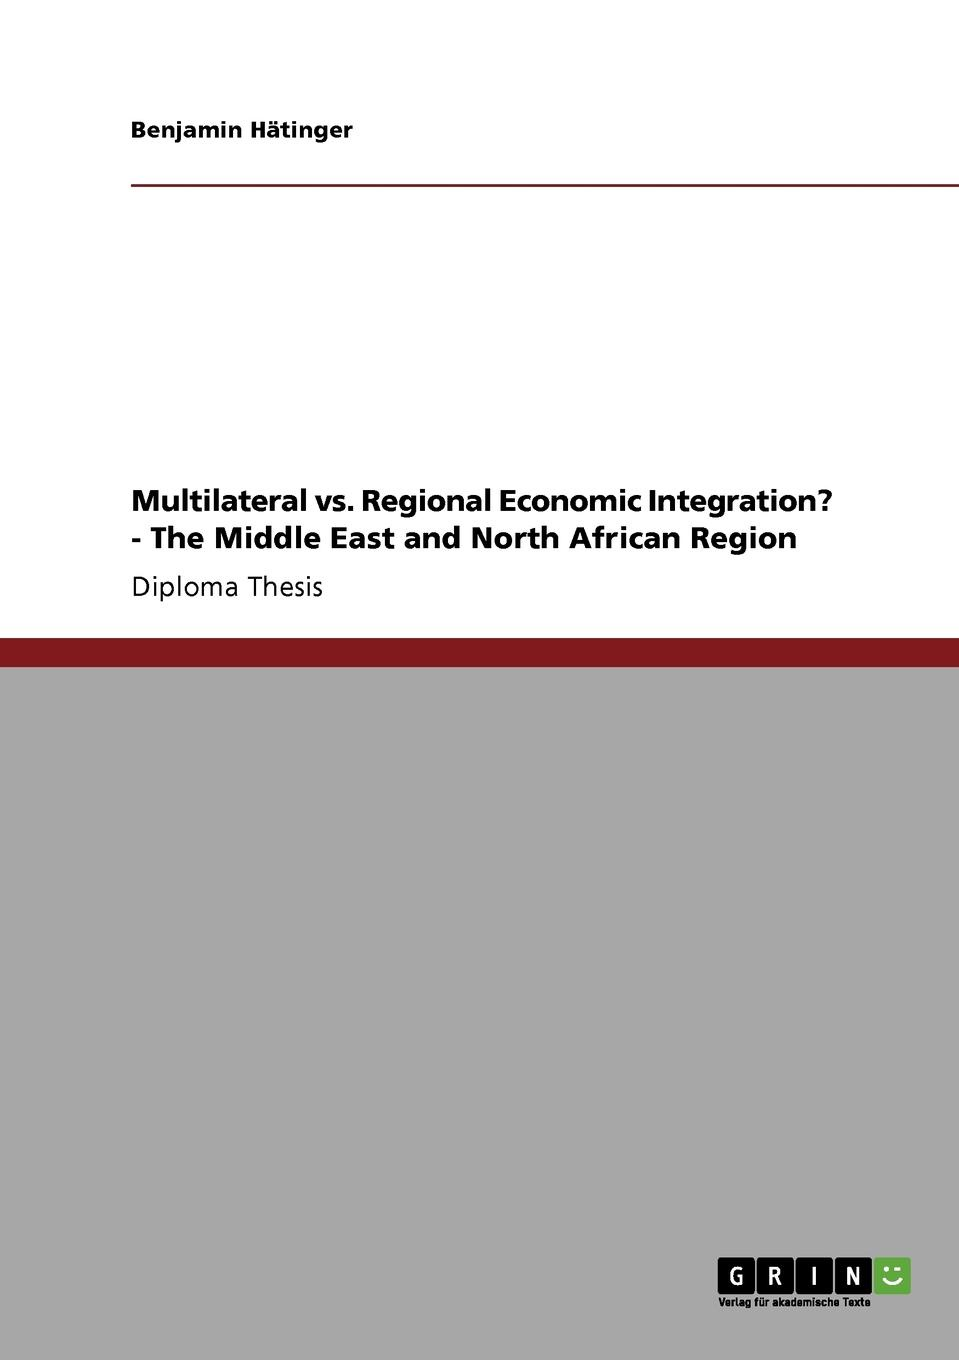 Benjamin Hätinger Multilateral vs. Regional Economic Integration. - The Middle East and North African Region vishaal kishore ricardo s gauntlet economic fiction and the flawed case for free trade